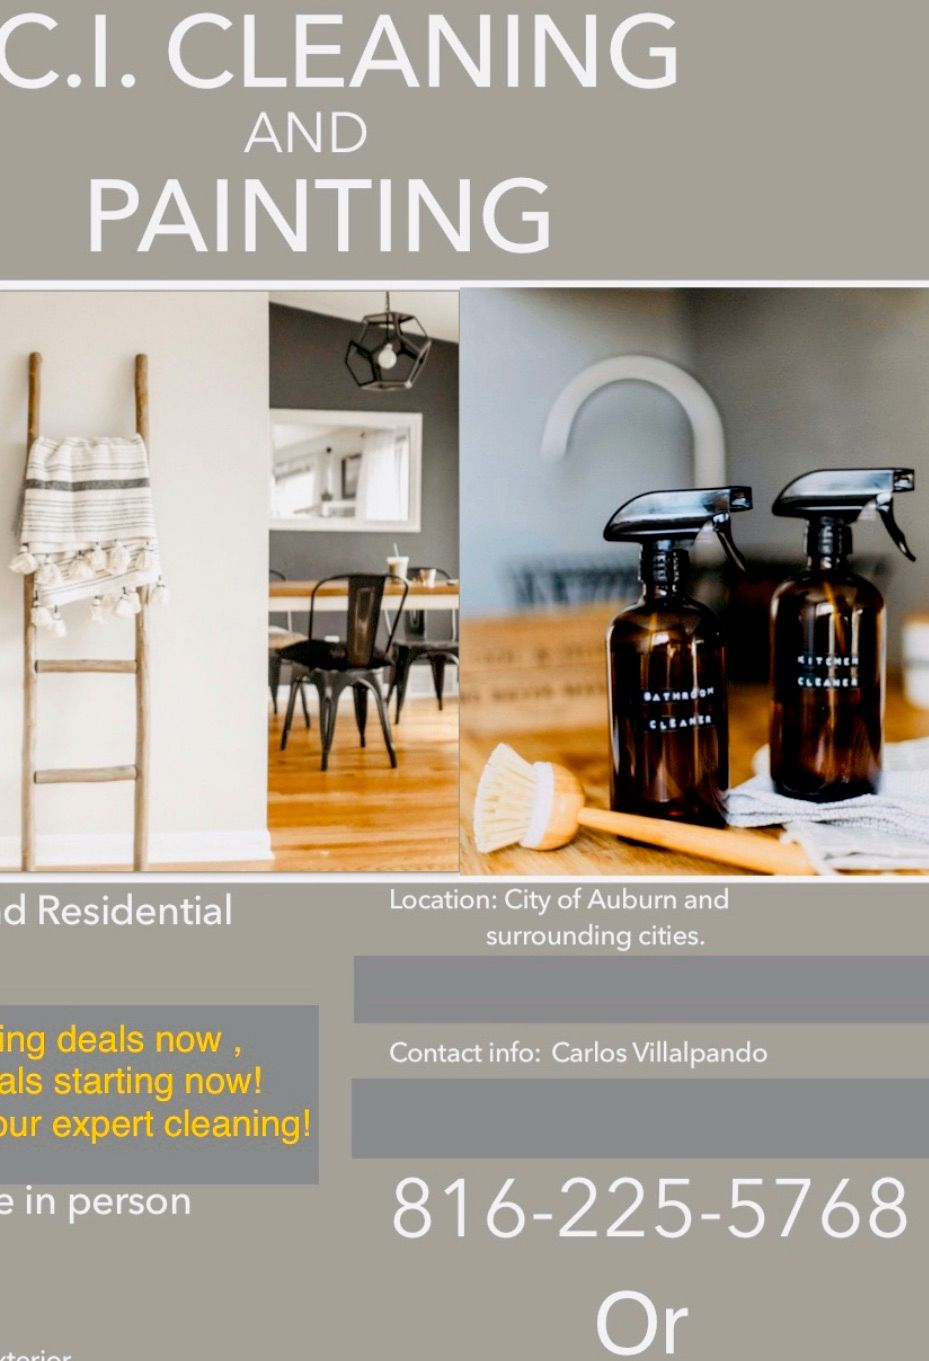 CI CLEANING AND PAINTING